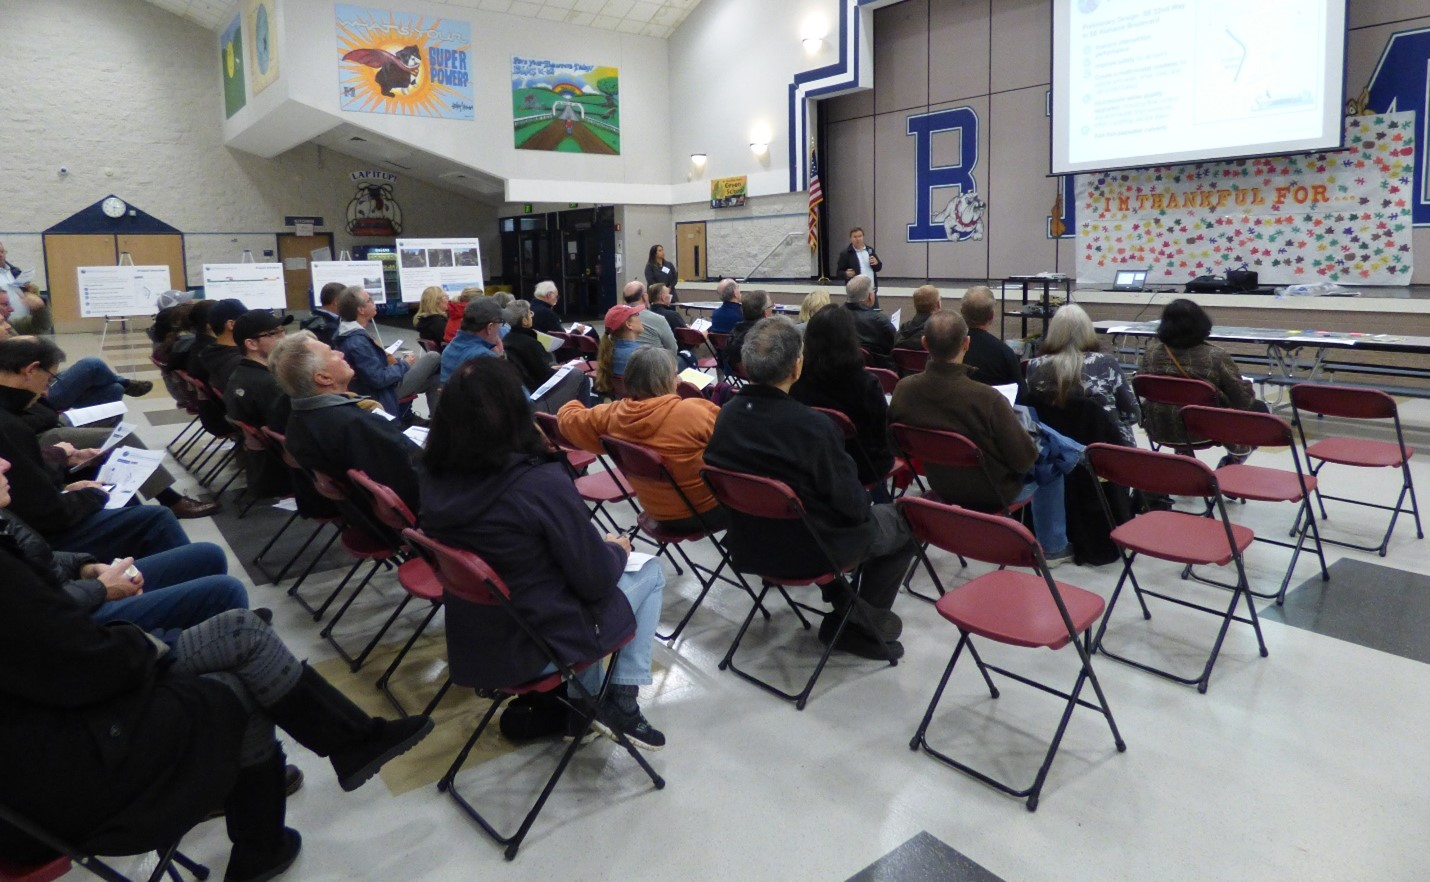 Community meeting at a school auditorium. Audience of about 30 to 40 people are looking forward at project presentation.